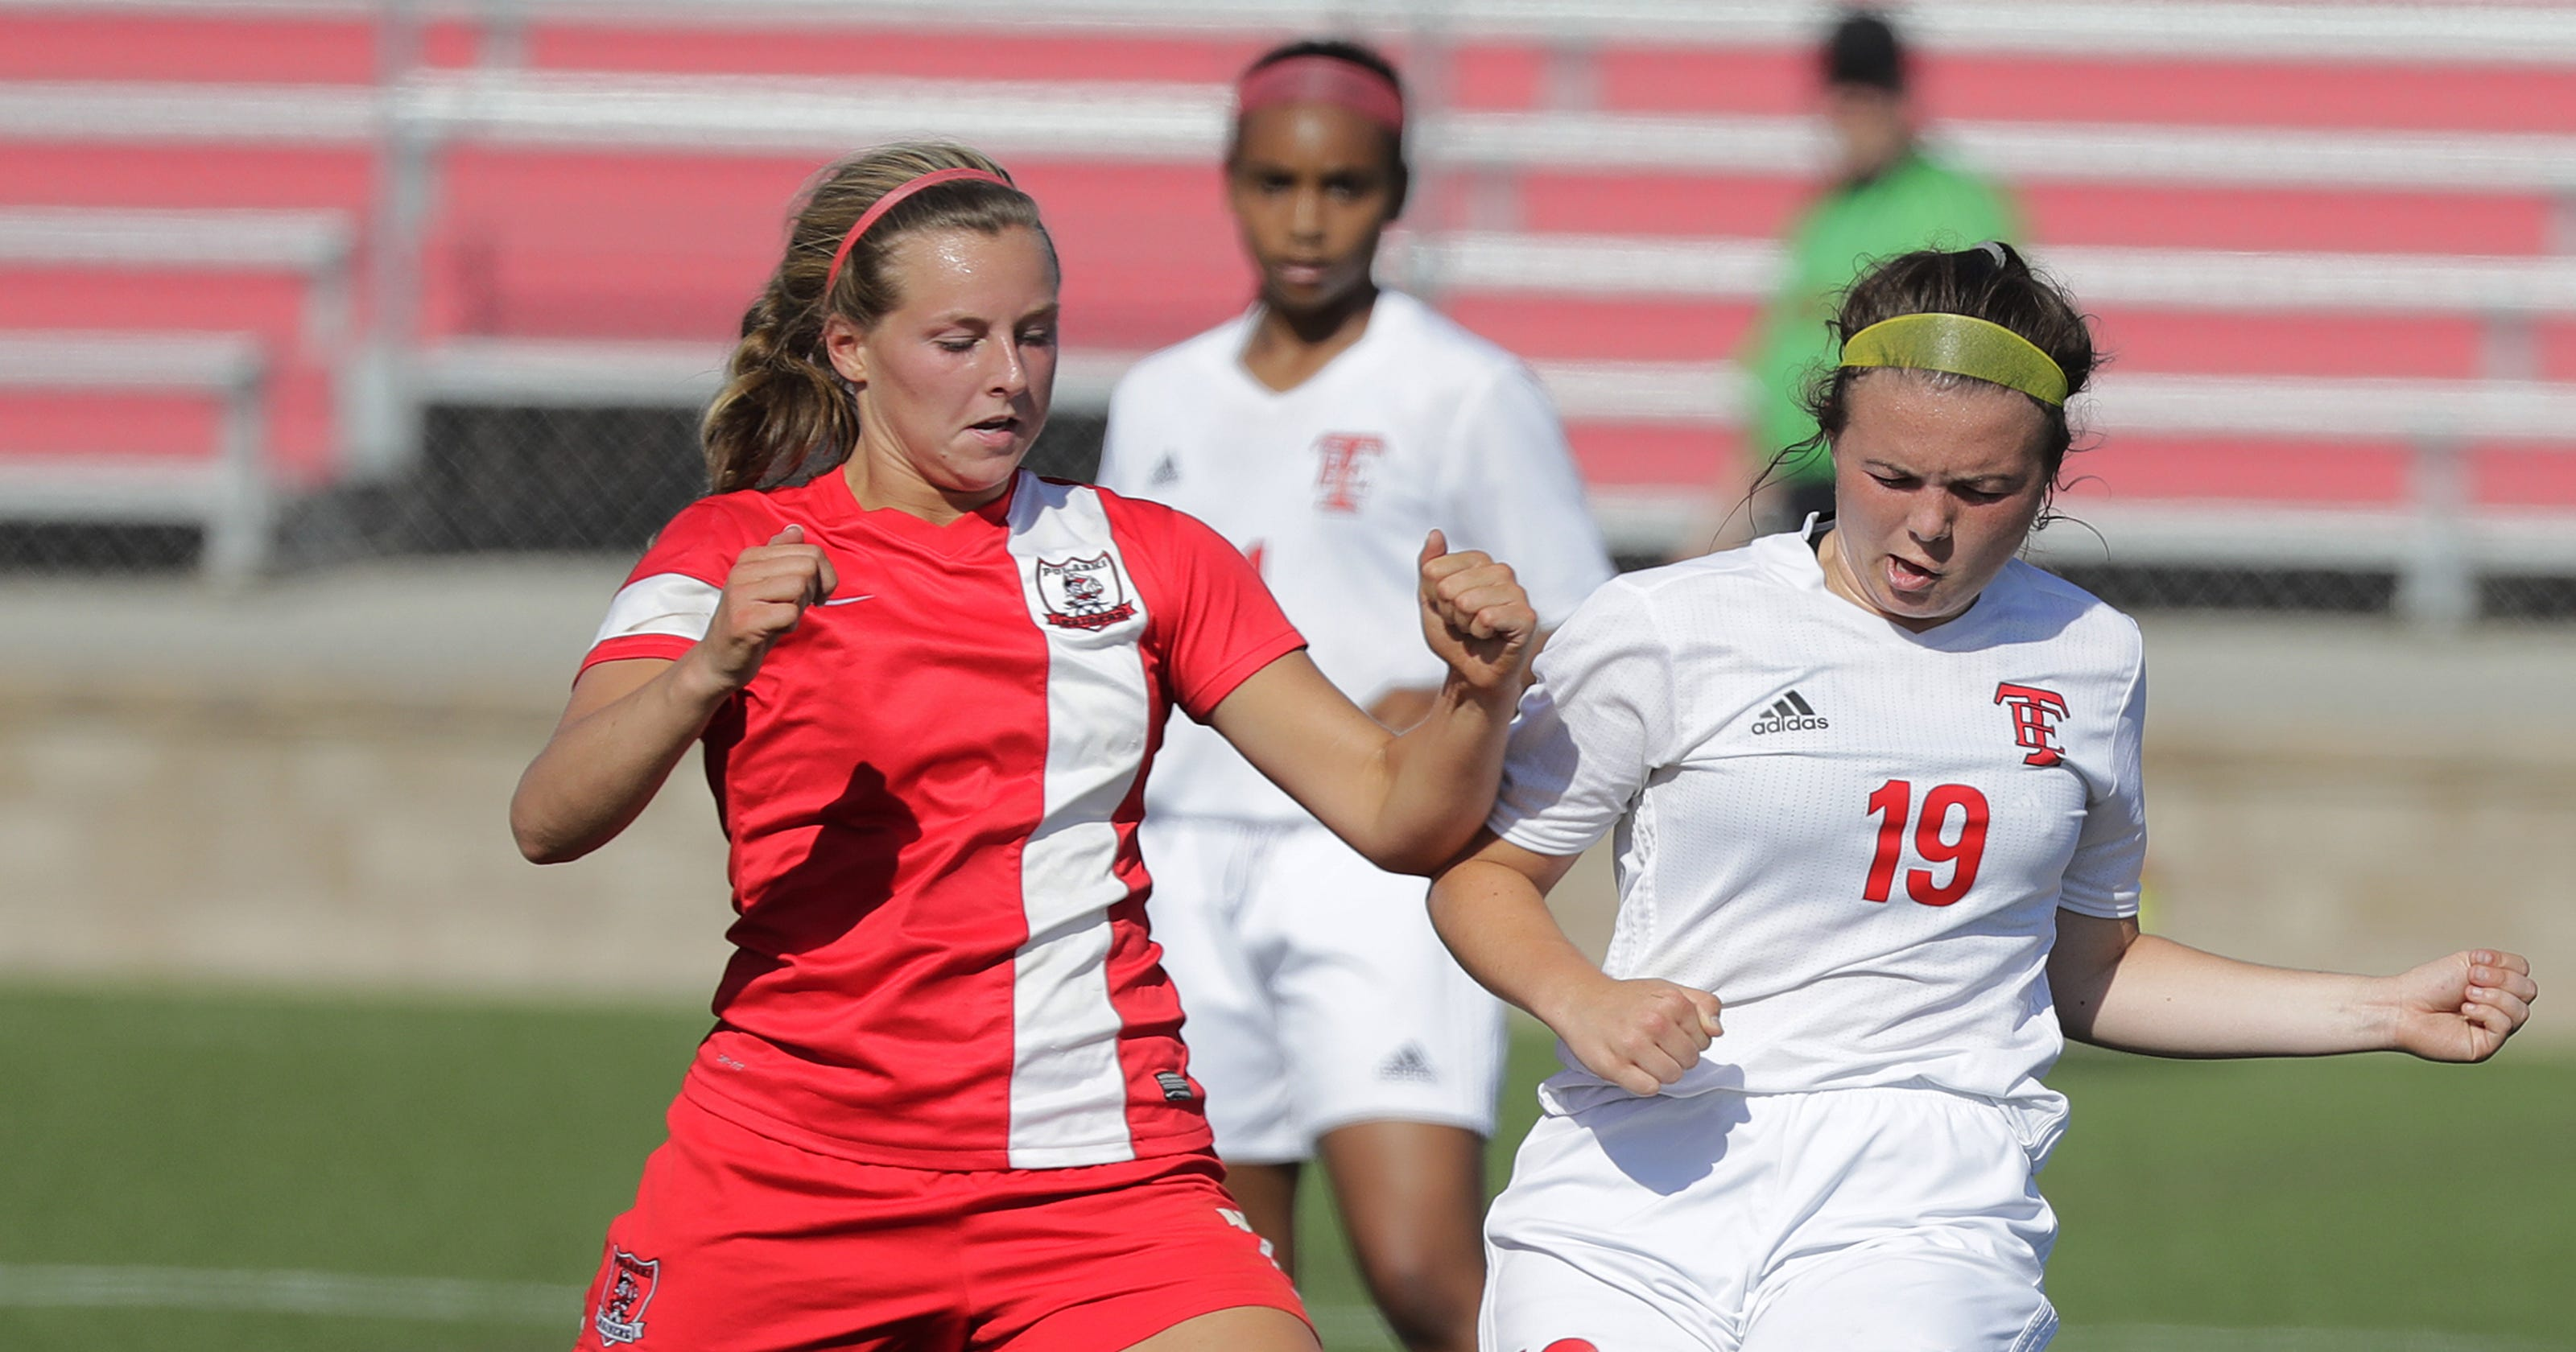 be3f7b1a4012 Wait for state win continues for Pulaski girls soccer